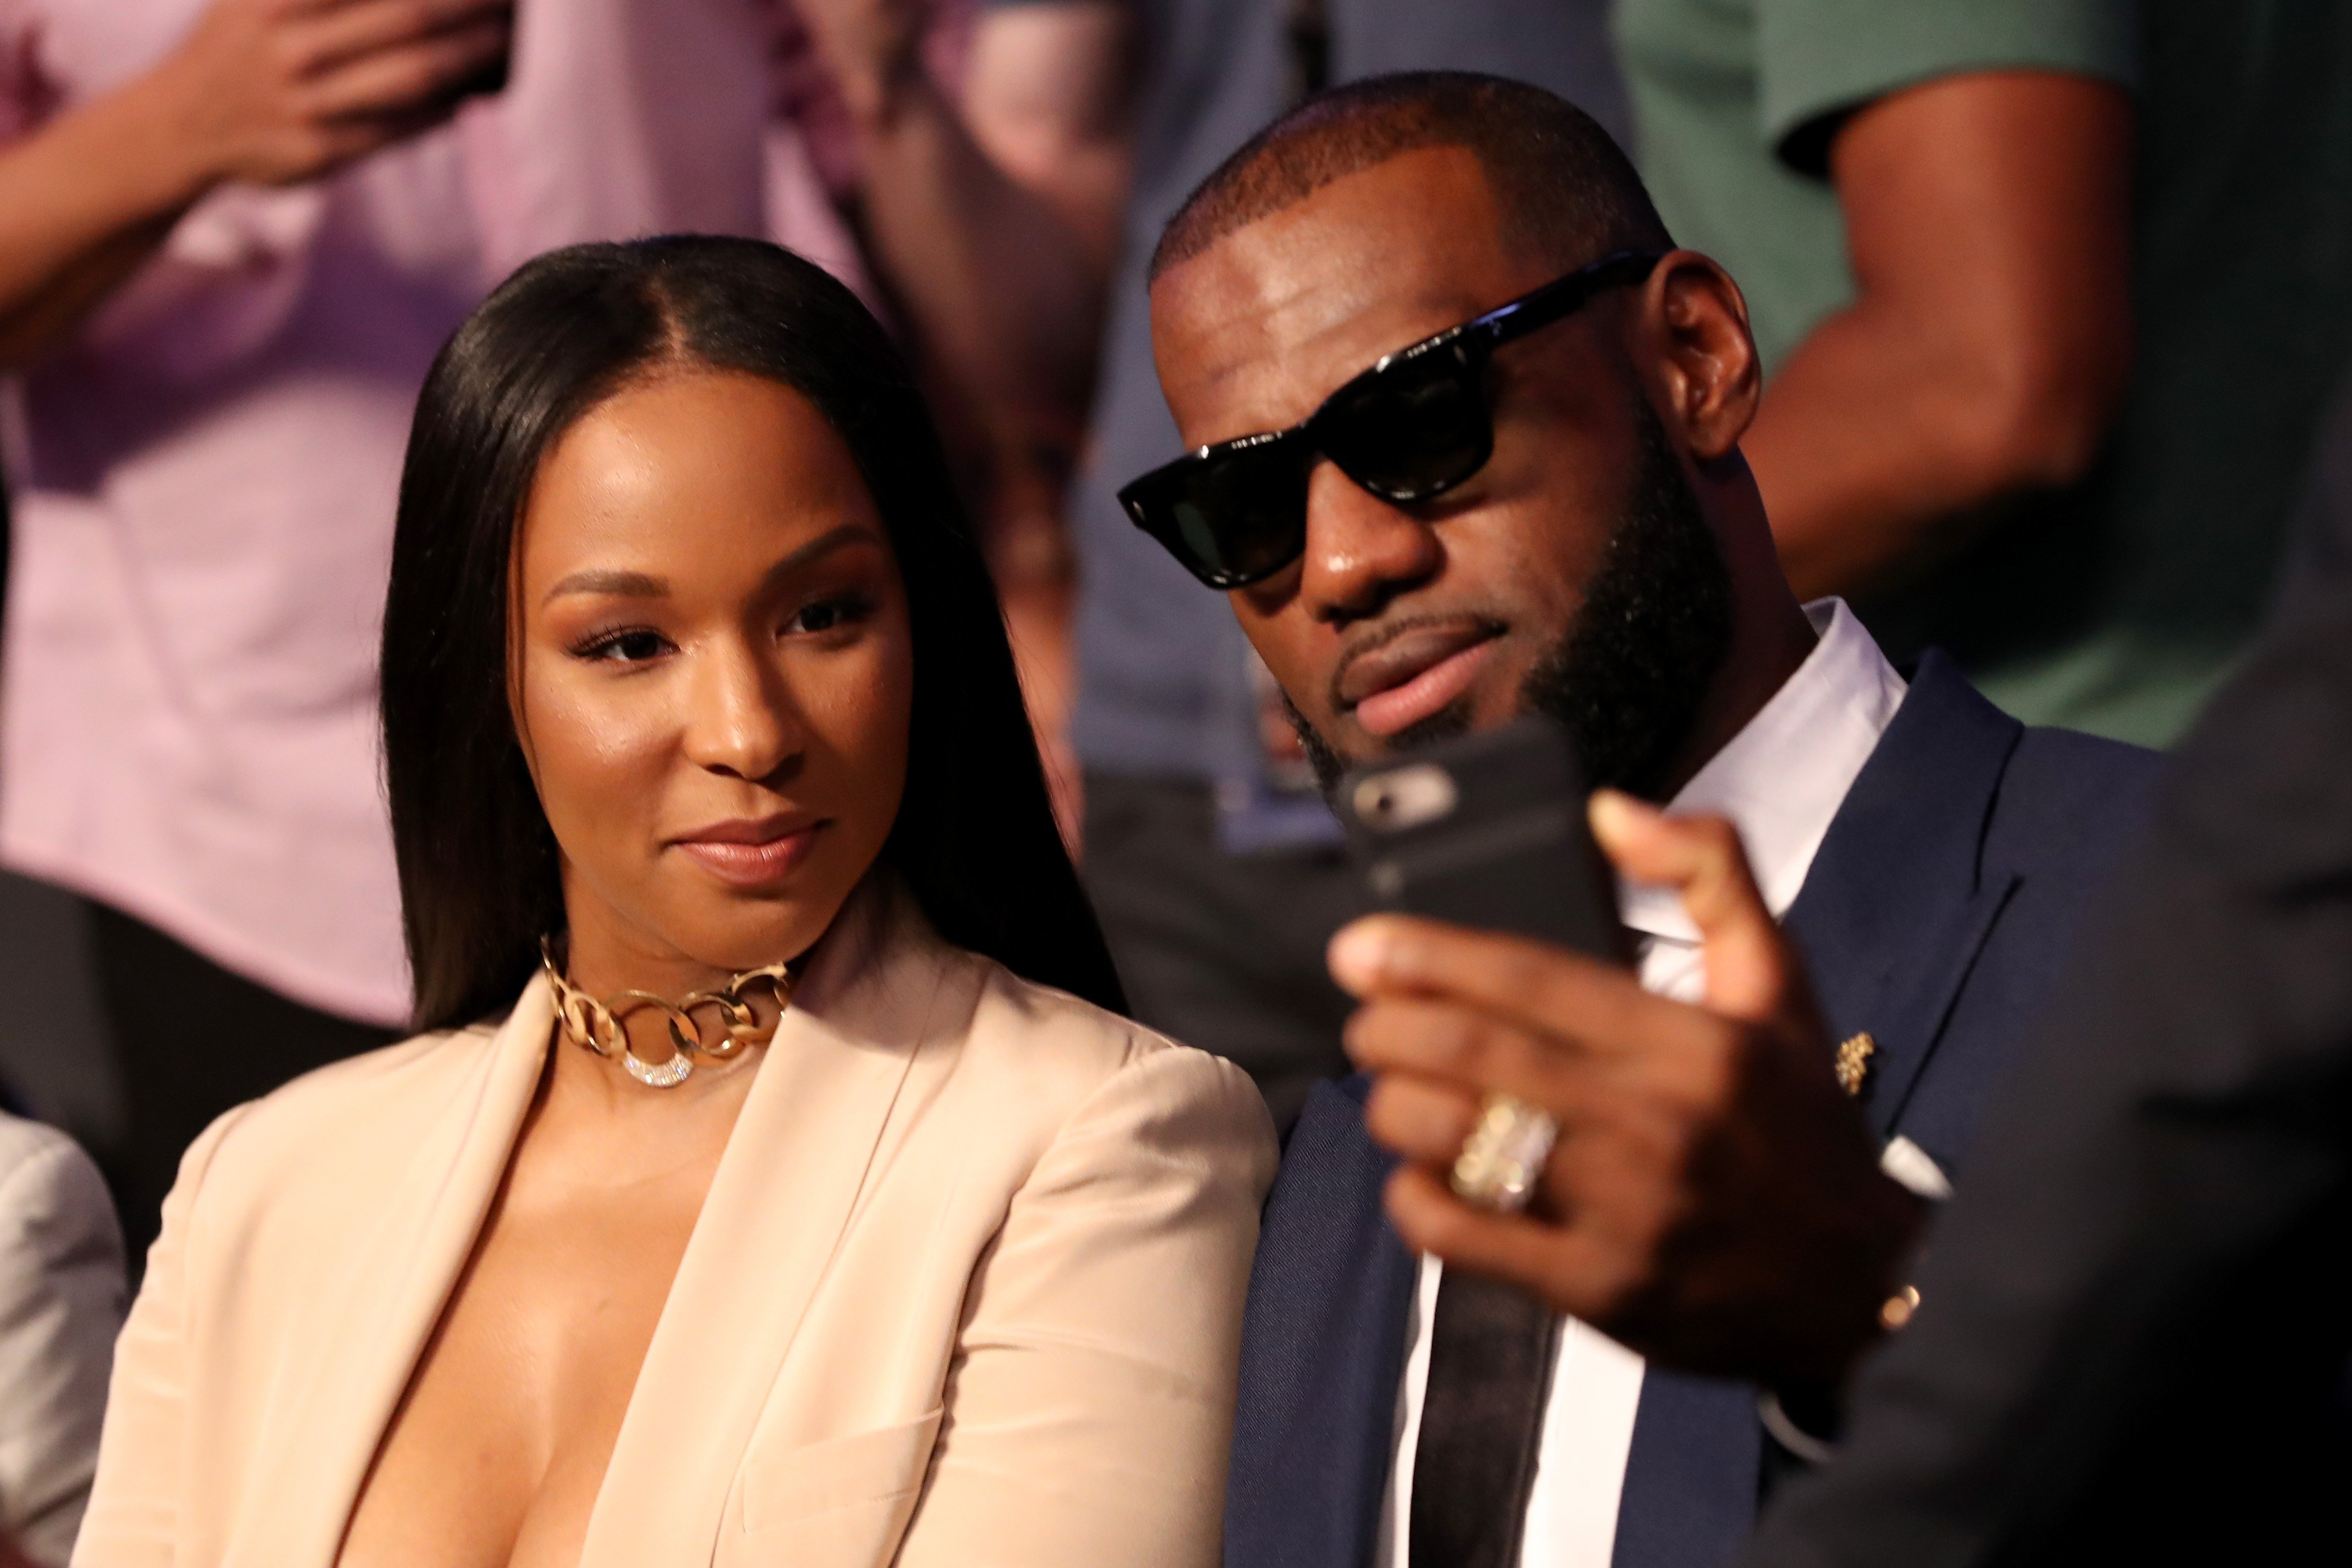 LeBron & Savannah James at the boxing match between Floyd Mayweather Jr. & Conor McGregor on Aug. 26, 2017 in Las Vegas | Photo: Getty Images